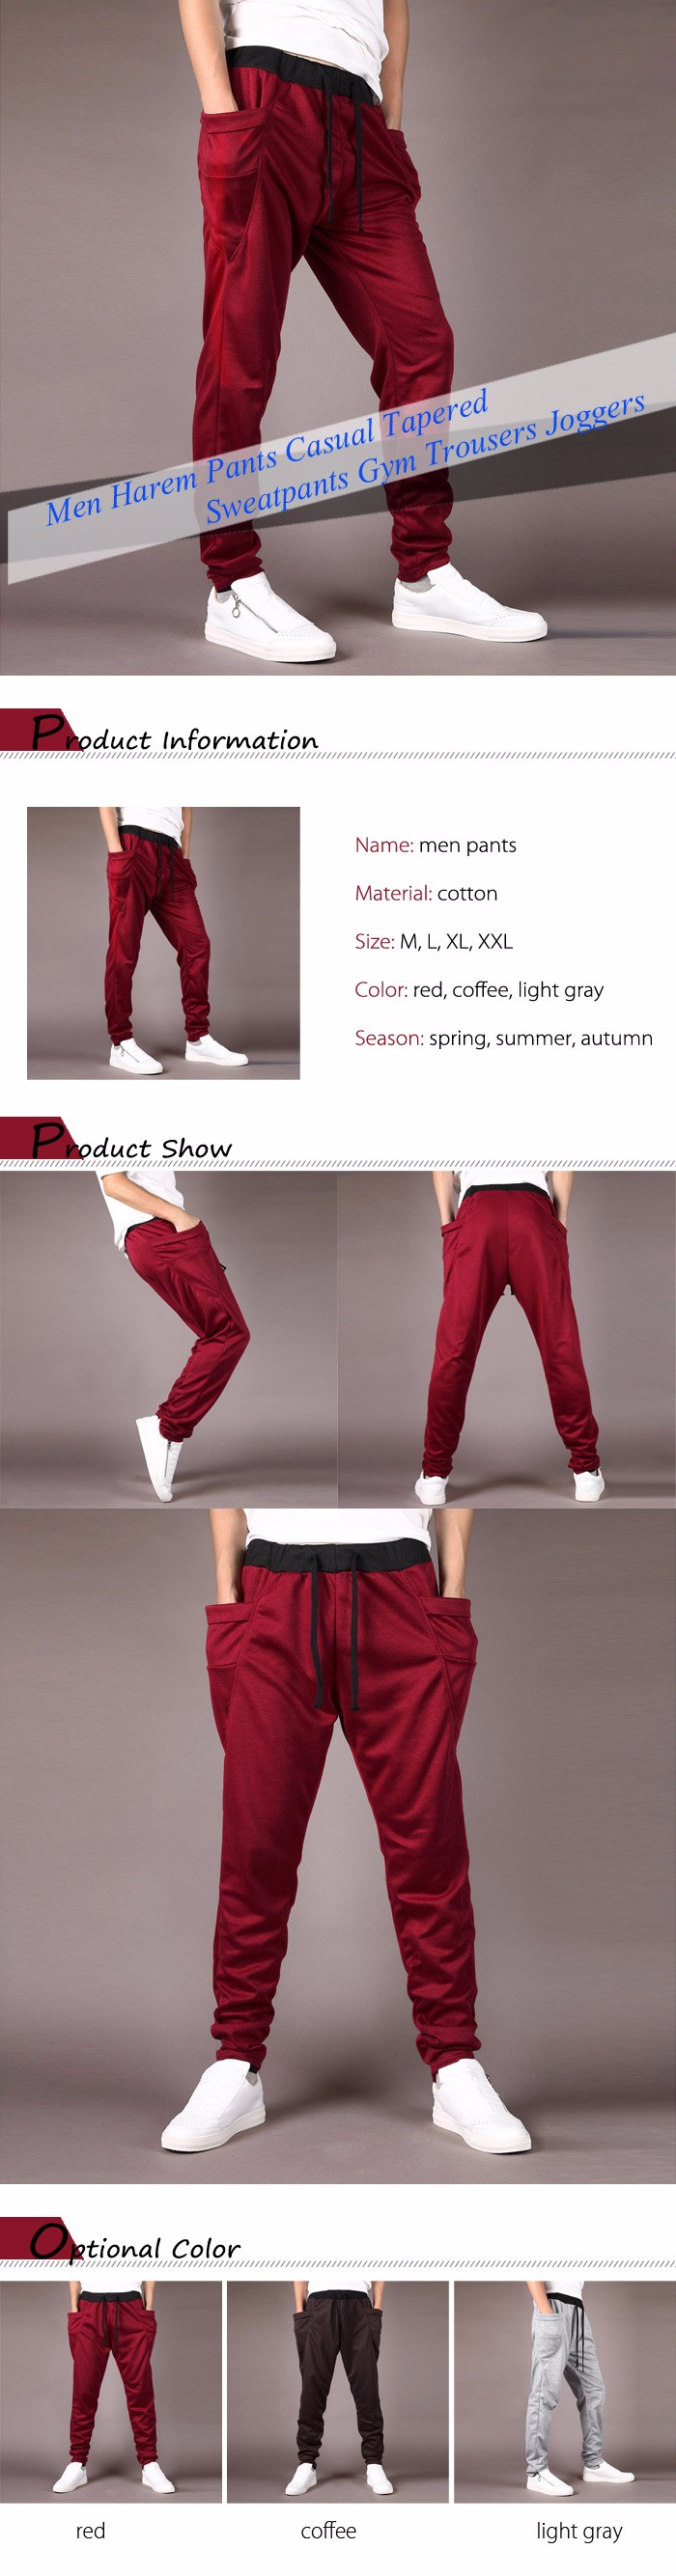 Men Harem Pants Casual Tapered Sweatpants Gym Trousers Joggers